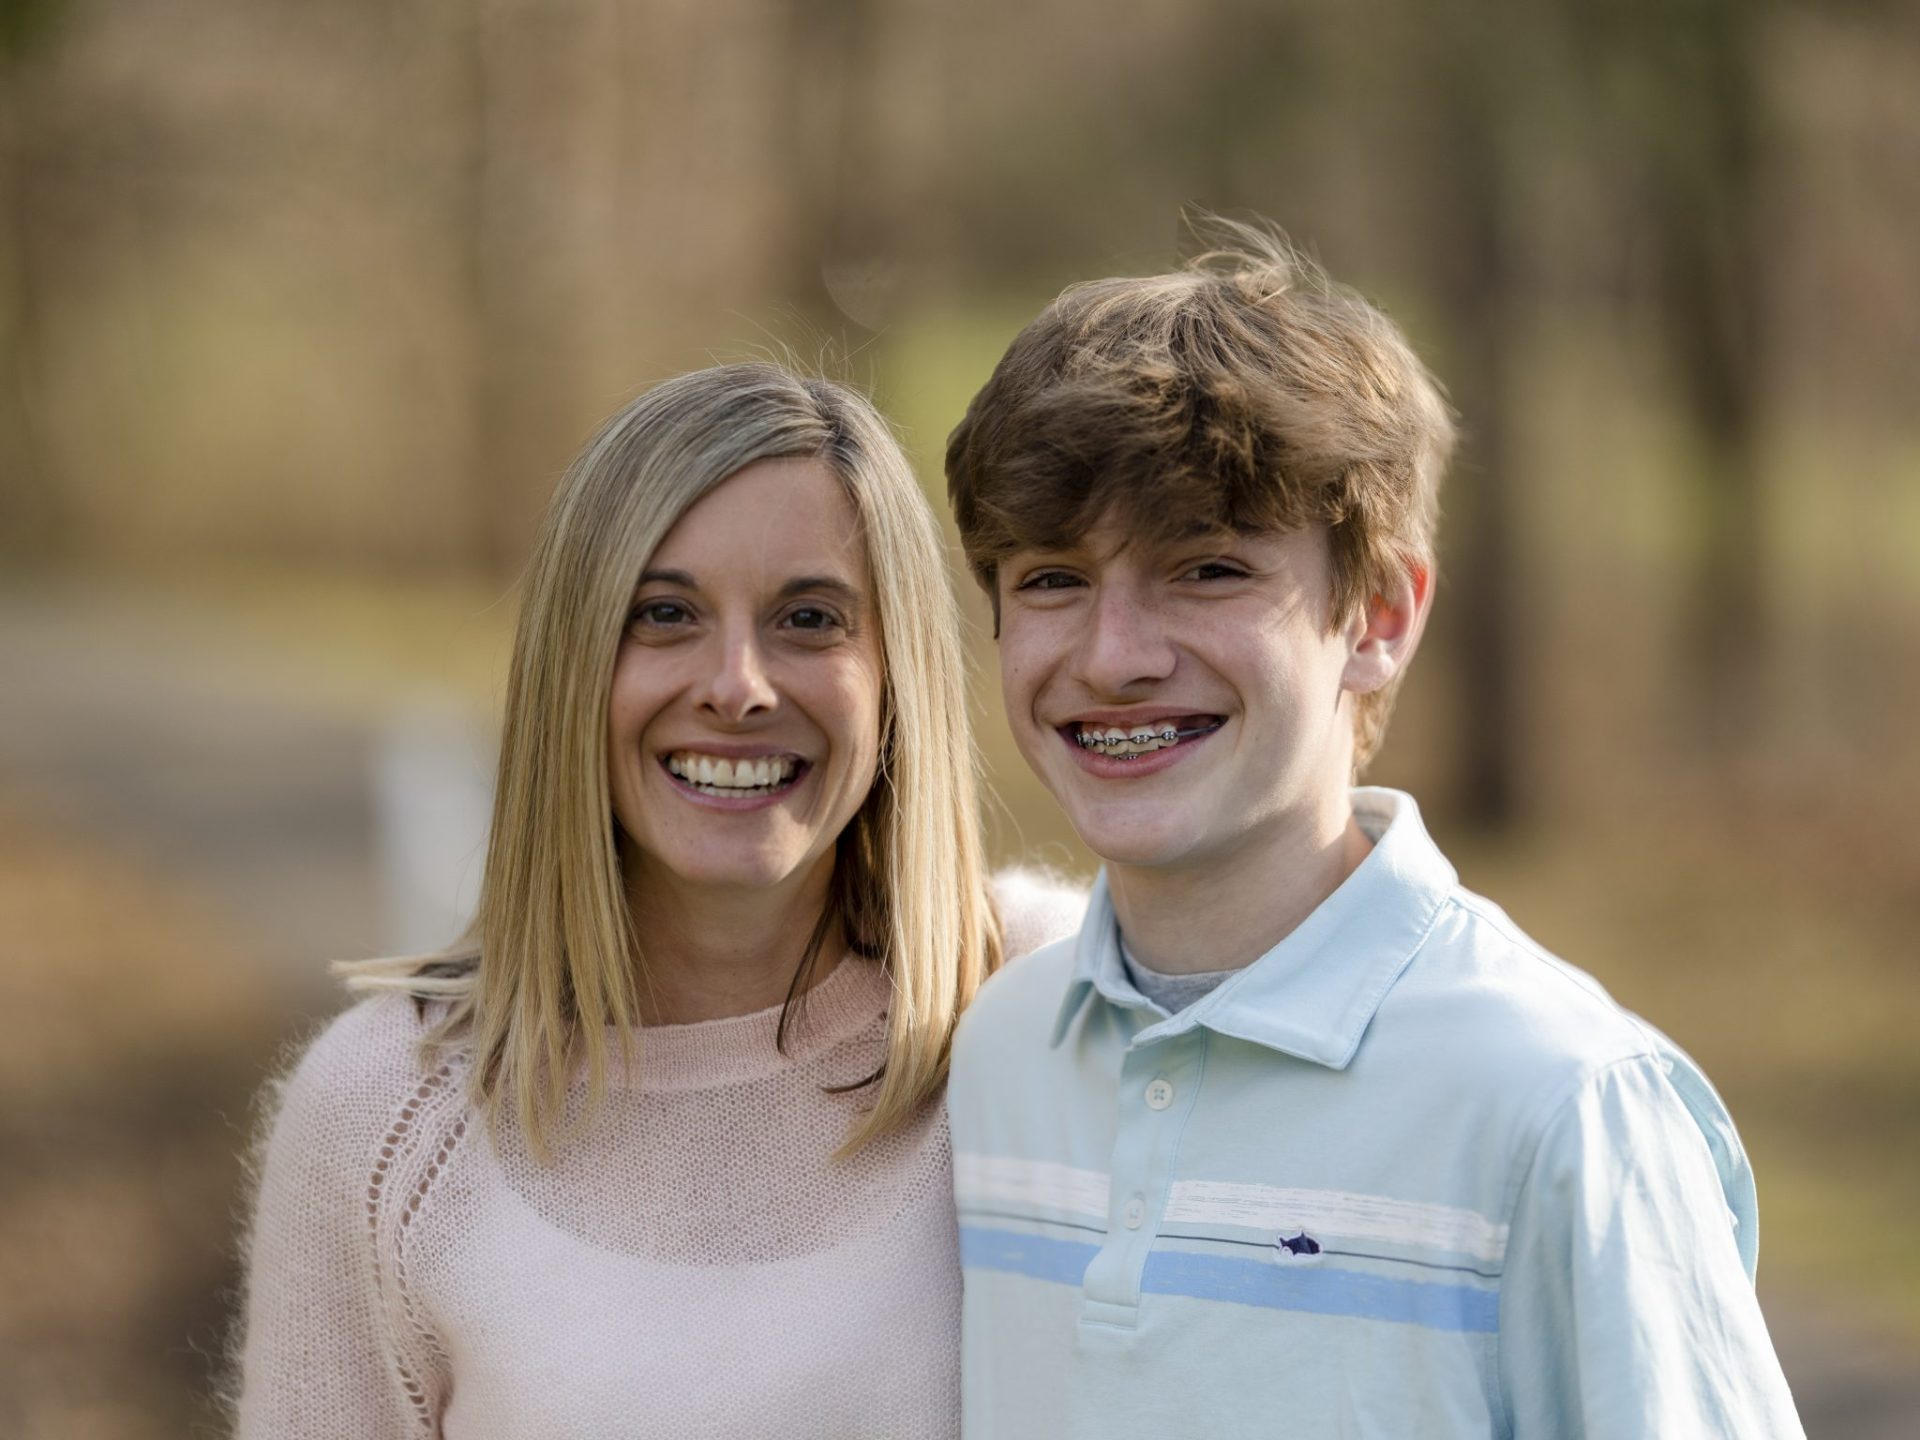 Mother and son in pink sweater, blue polo and jeans, natural lighting, natural setting, woods, Professional portraits, portraiture, Keuka Lake, Fingerlakes Region, Vacation photos, Fingerlakes vacation, Penn Yan, New York, family photoshoot, family pictures, Mom and son pictures